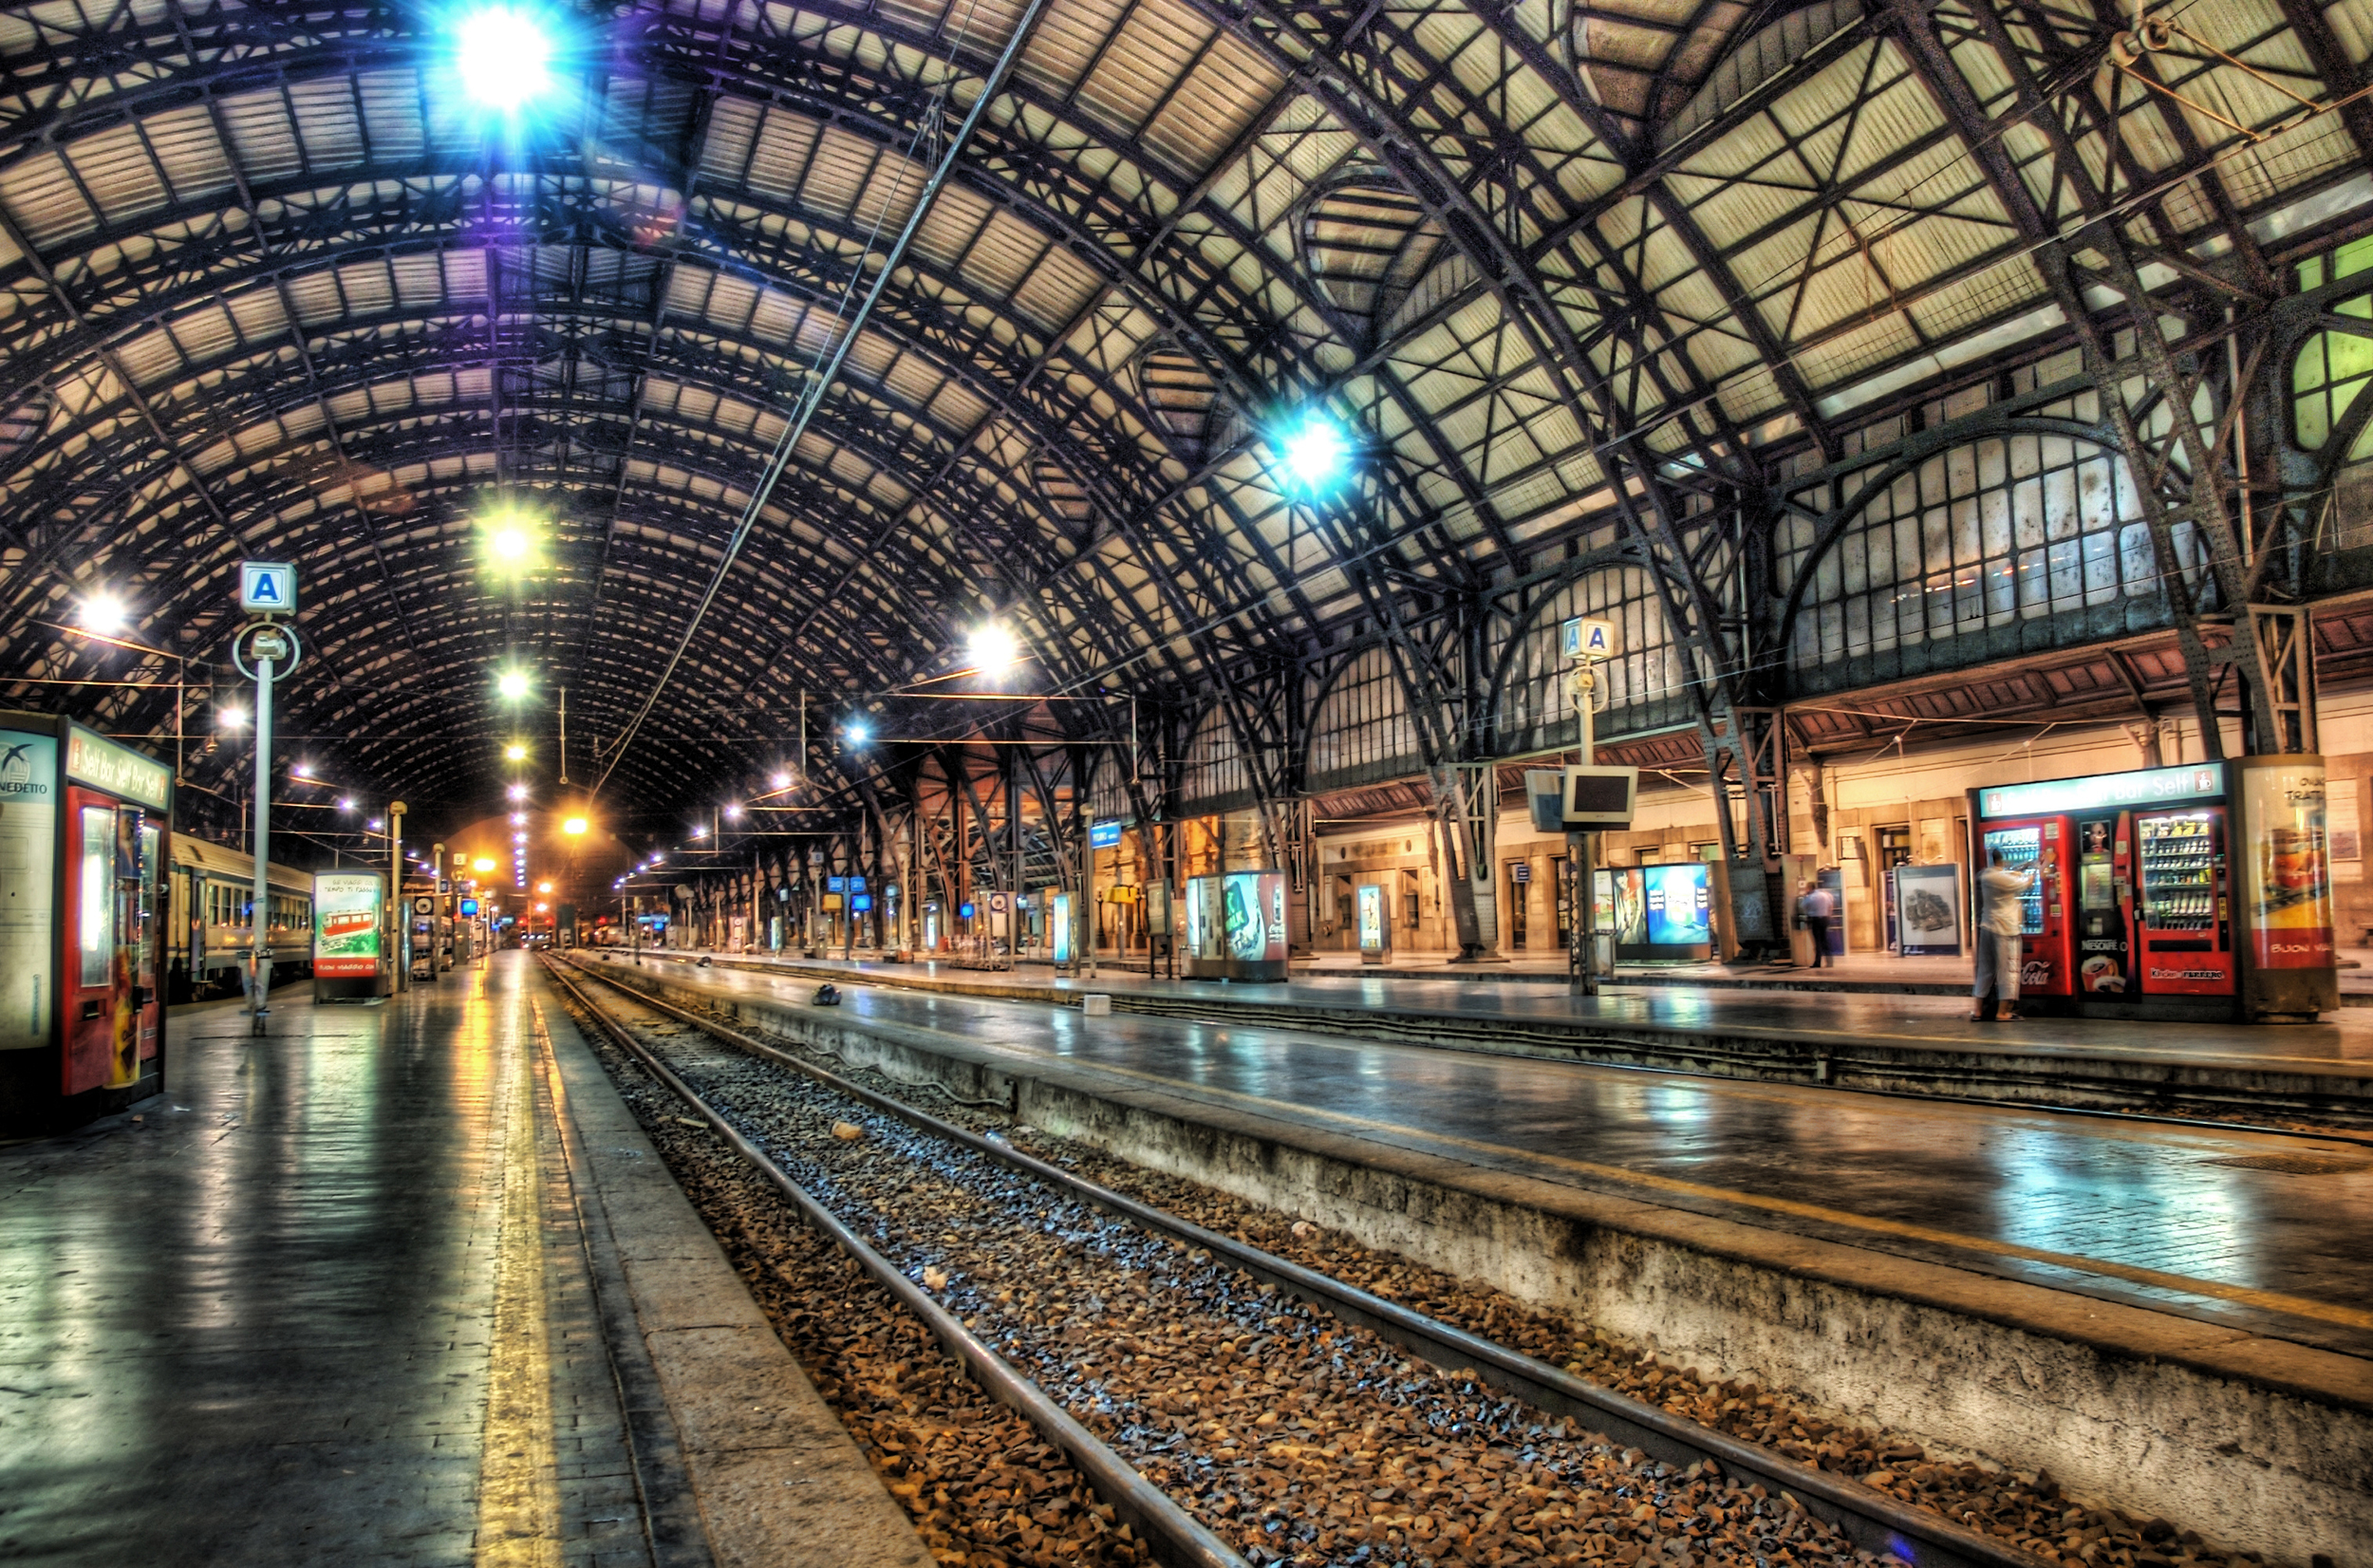 foto: Trey Ratcliff | Milan Train Station at Midnight (HDR opname)